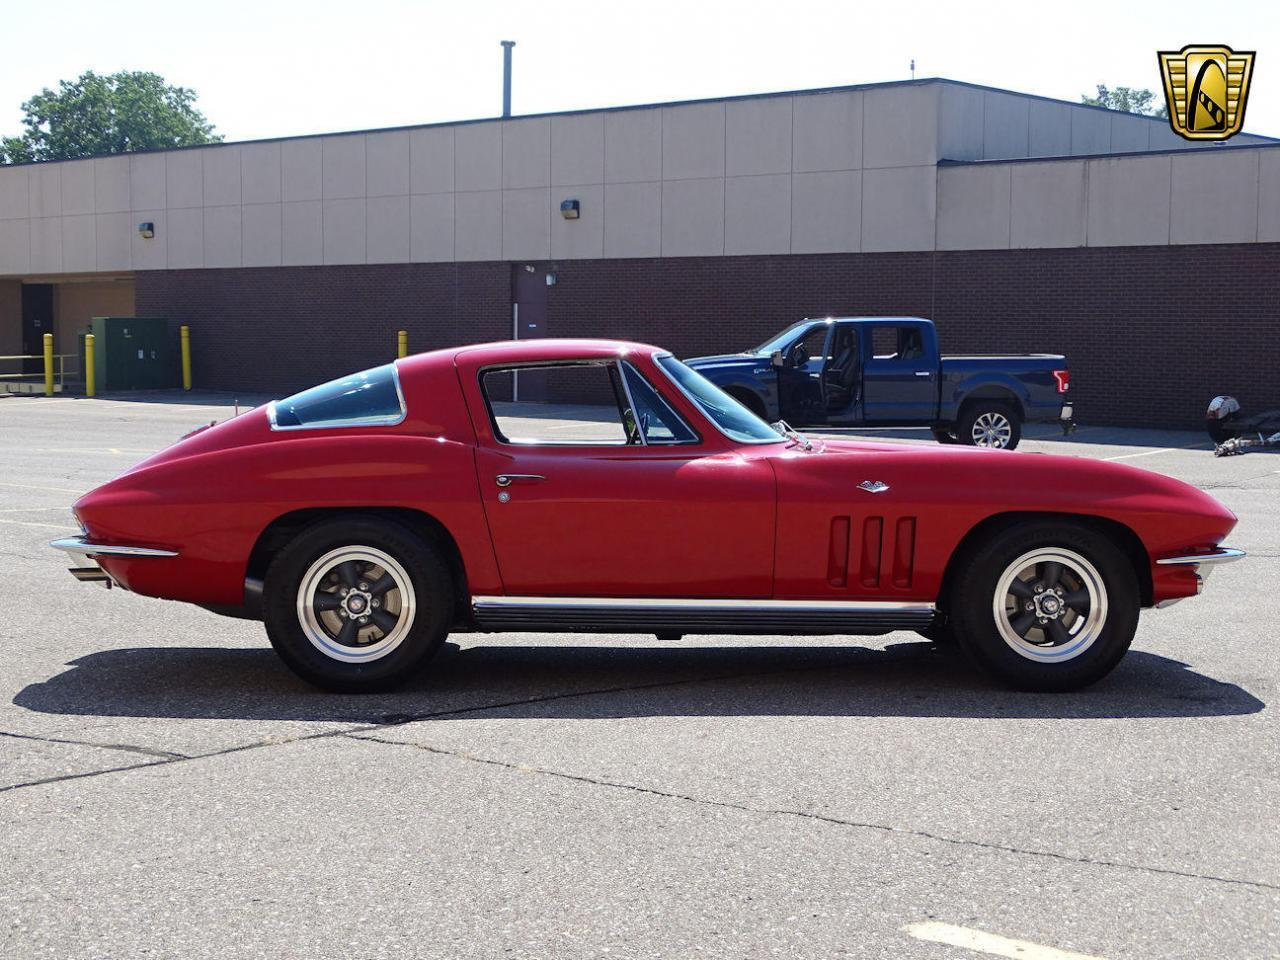 Large Picture of 1966 Chevrolet Corvette located in Dearborn Michigan - $68,000.00 - LH96